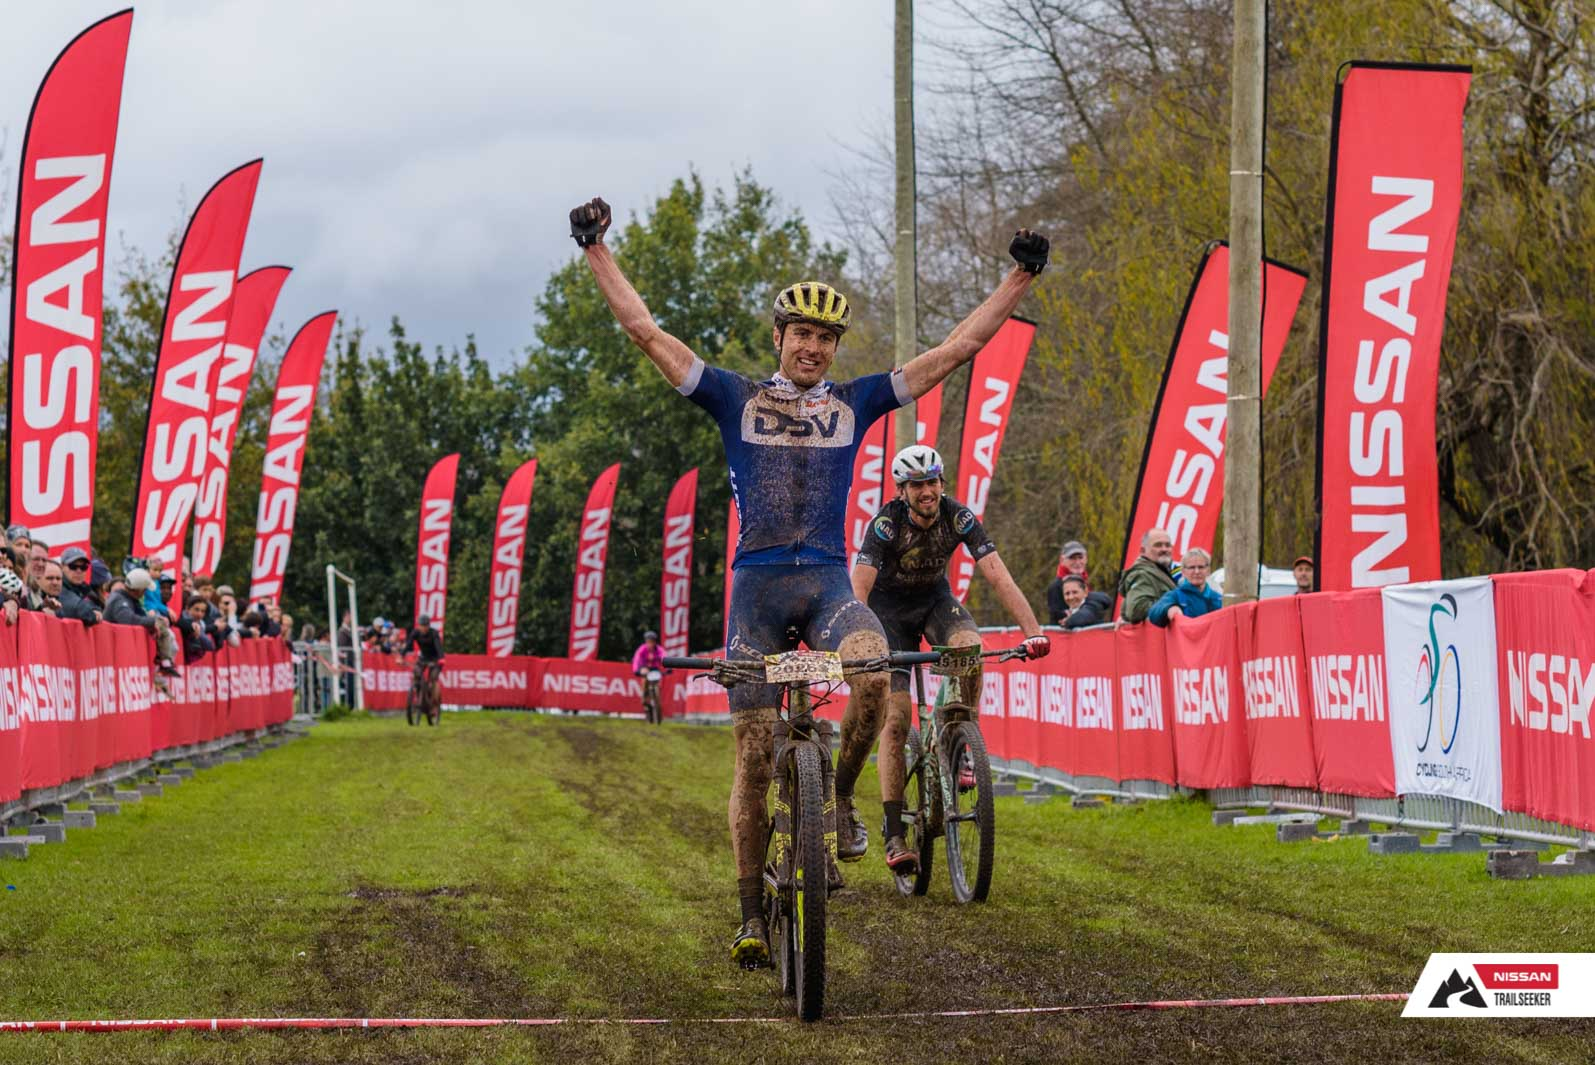 Endurance stage racer Gert Heyns (DSV Pro Cycling) emerged the victor in the Elite Men's race at the recent 2018 SA Mountain Bike Marathon Championships on 14 July, winning the epic battle over the 90-kilometre ultra-marathon course in a time of 03:29:30.